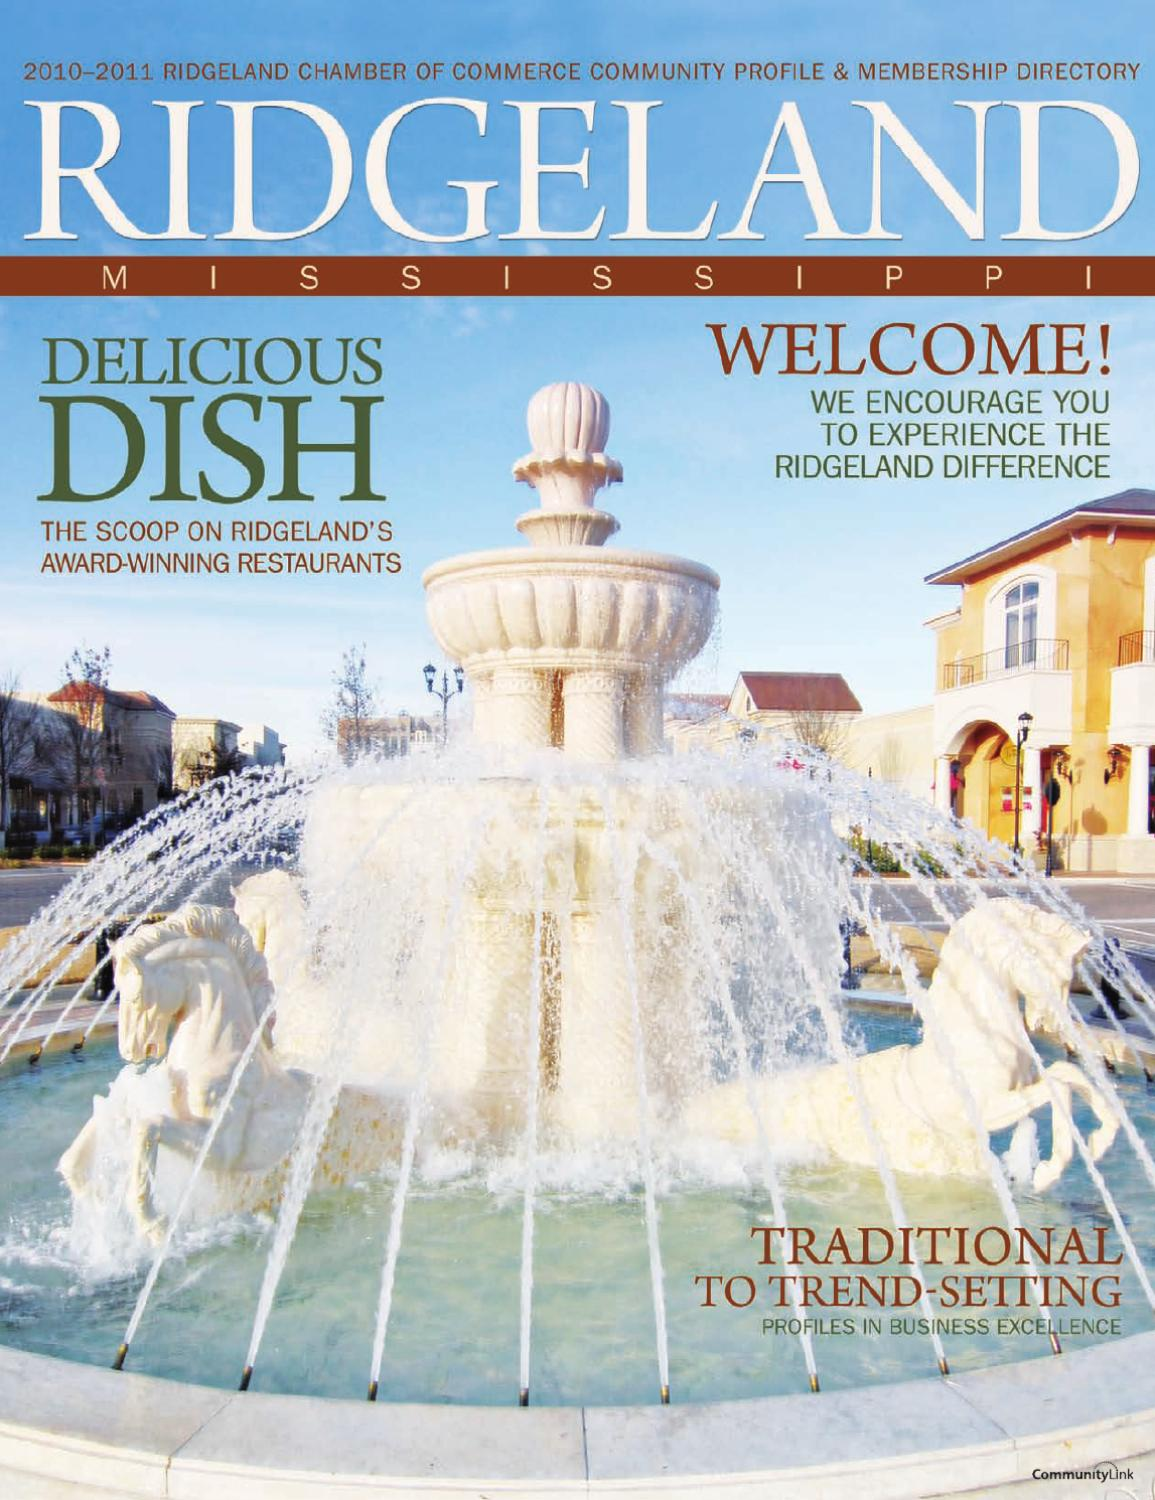 Rossini Cucina Italiana Ridgeland Menu Ridgeland Ms 2010 Community Profile And Membership Directory By